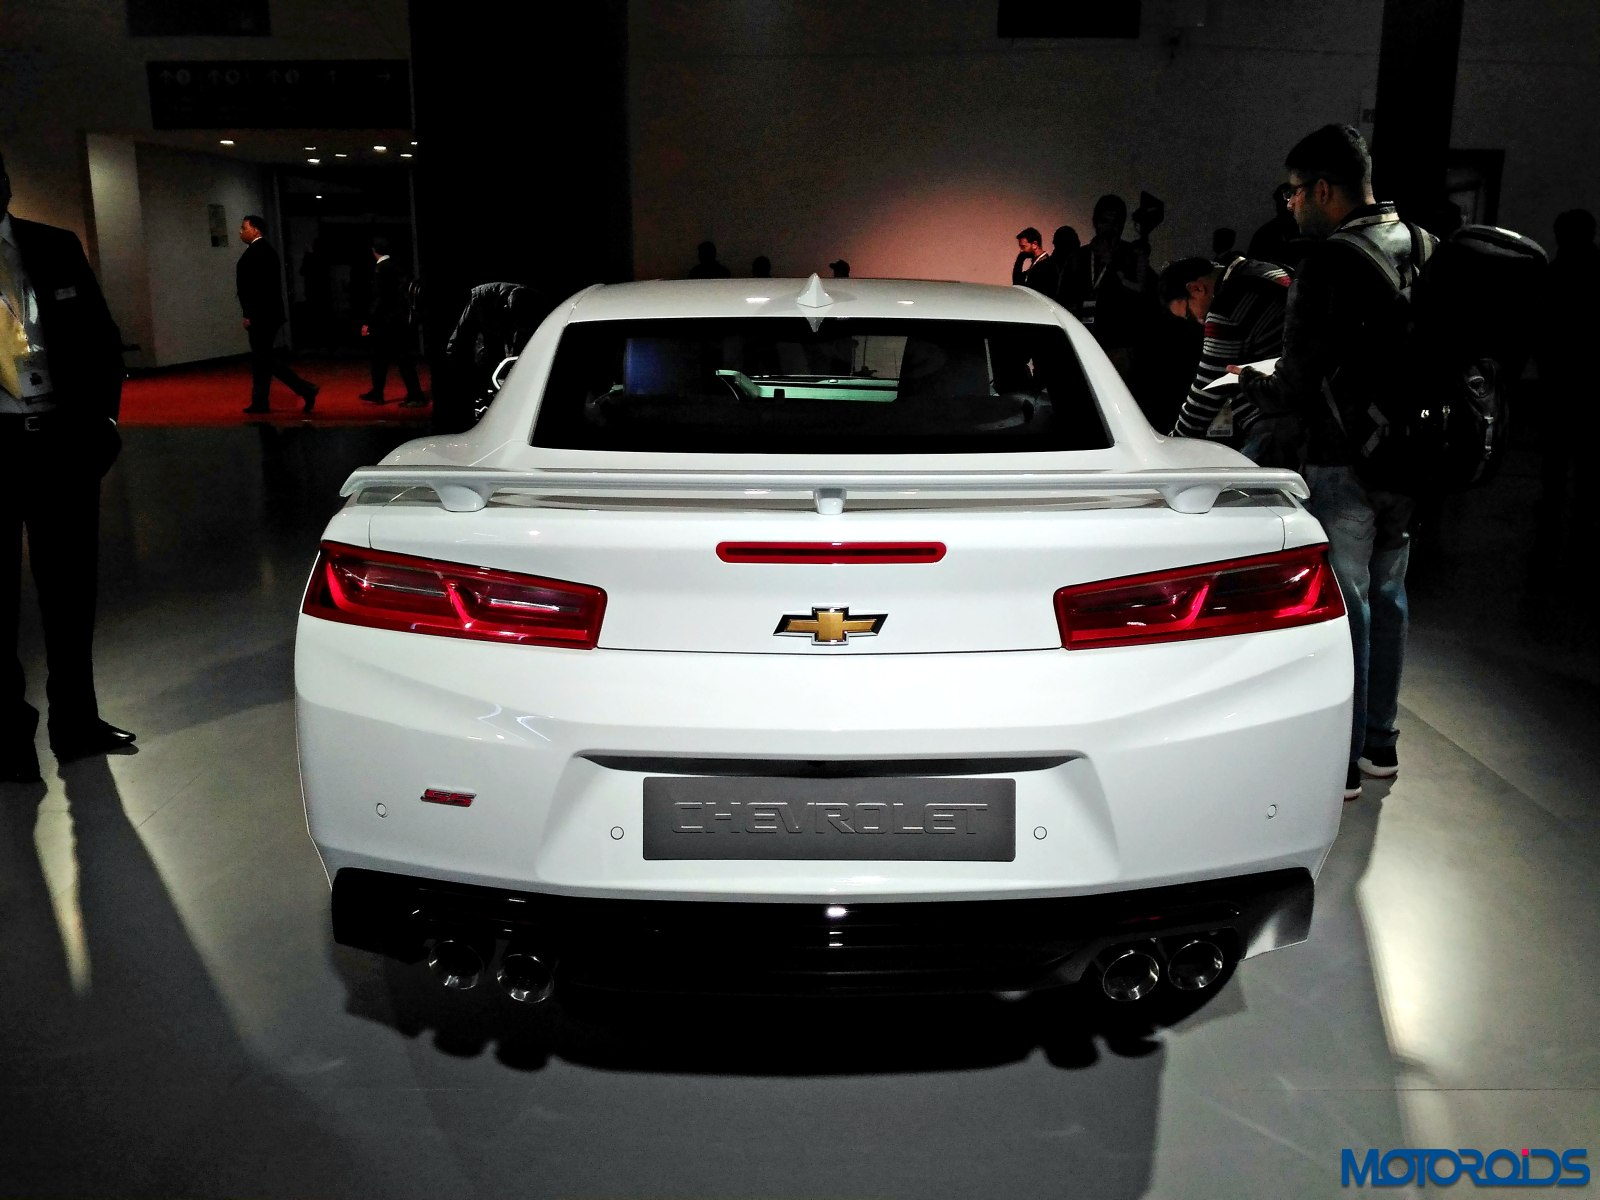 Chevrolet Camarao SS Auto Expo 2016 rear (3)